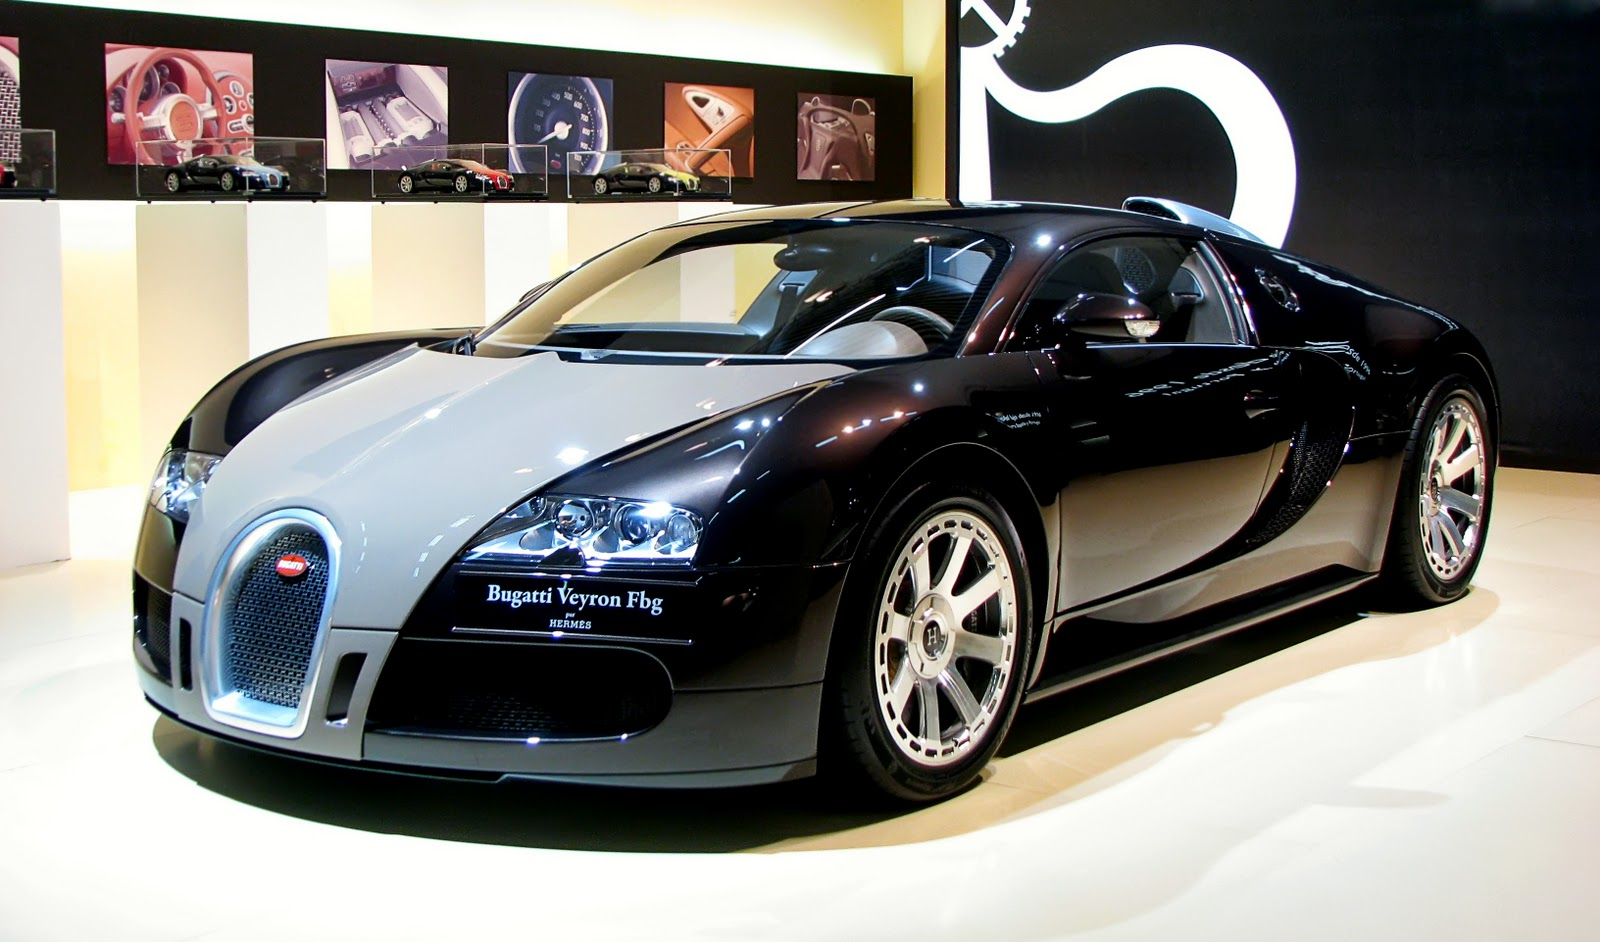 top cool cars bugatti veyron cool car desktop pictures. Black Bedroom Furniture Sets. Home Design Ideas